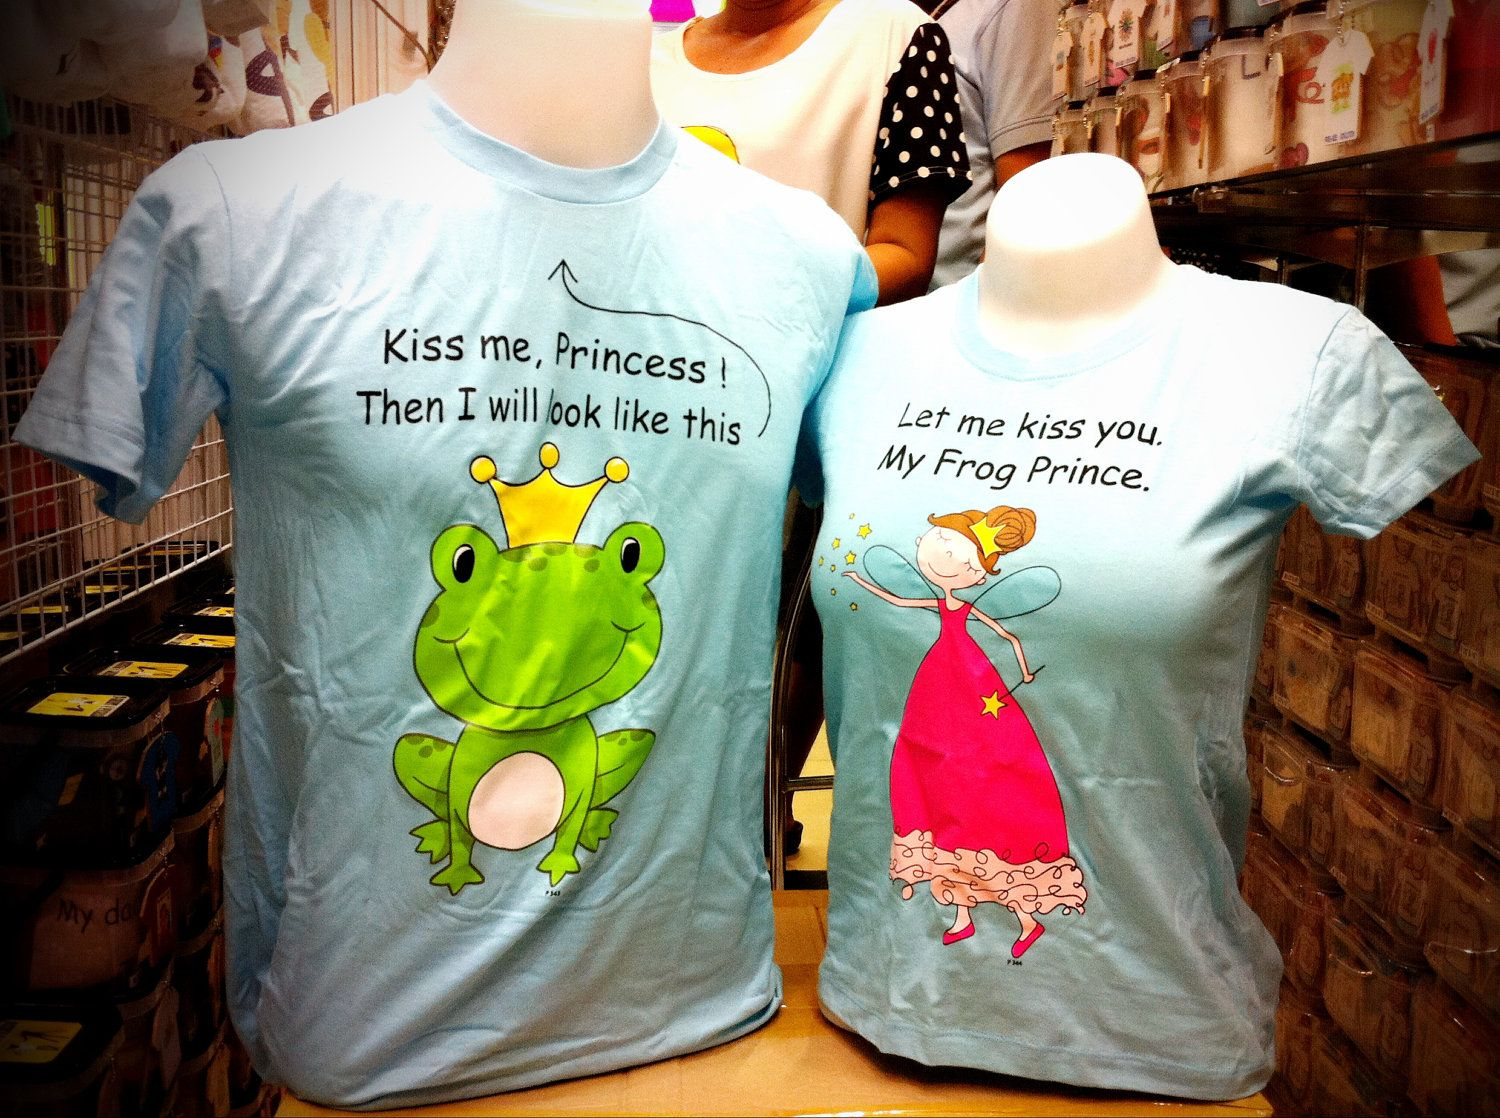 Shirt design couple shirts printing statement shirts - Cute Outfits Matching Ideas For Couples Couples Matching Outfitscouple Teesboyfriend